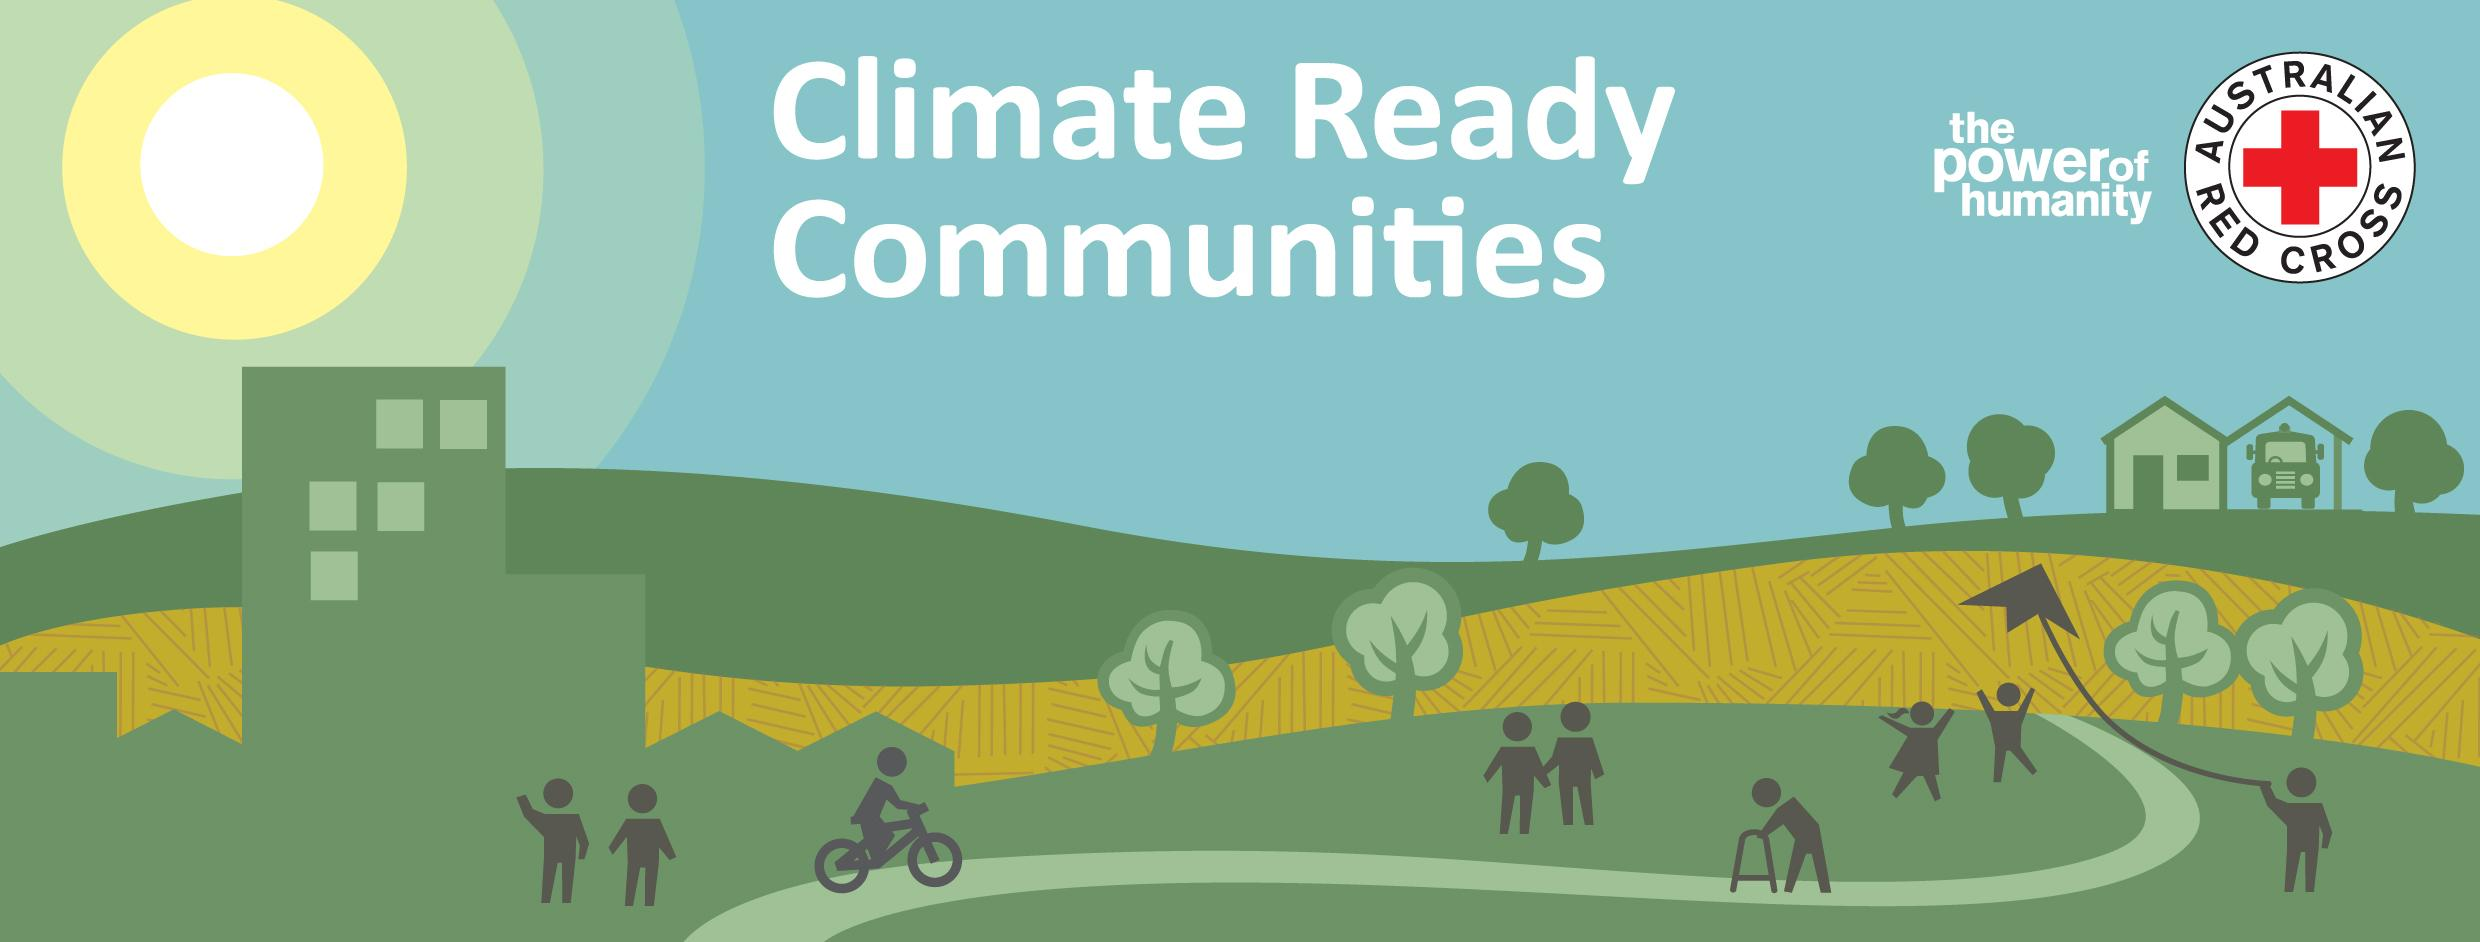 POSTPONED - Climate Ready Communities training - one day (Brighton)